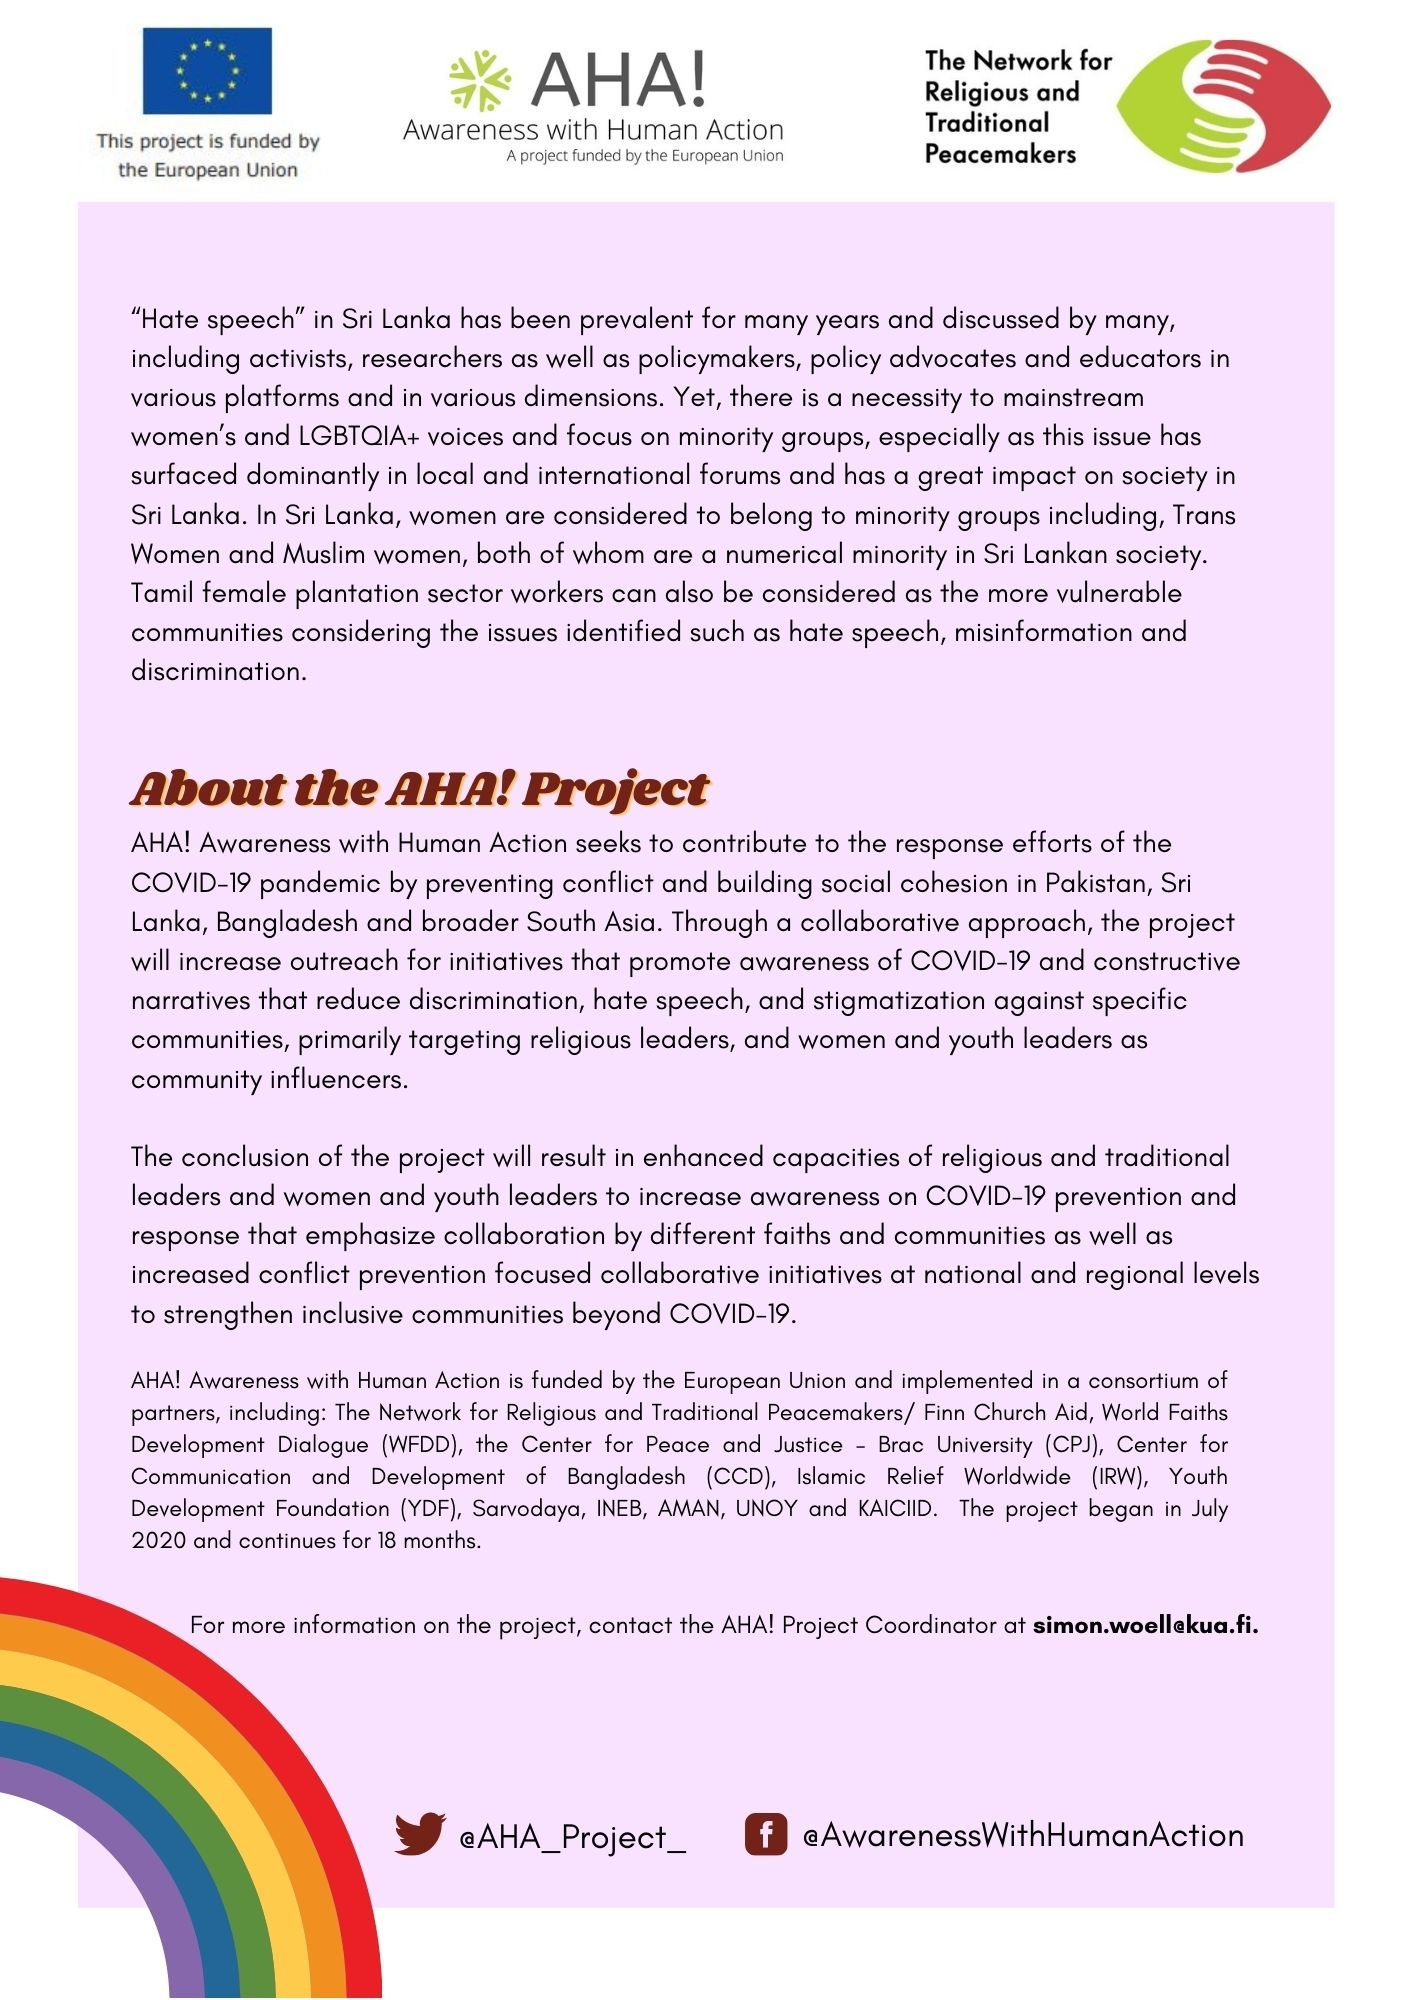 Safeguarding the Rights of Women and Sexual Minorities in Sri Lanka